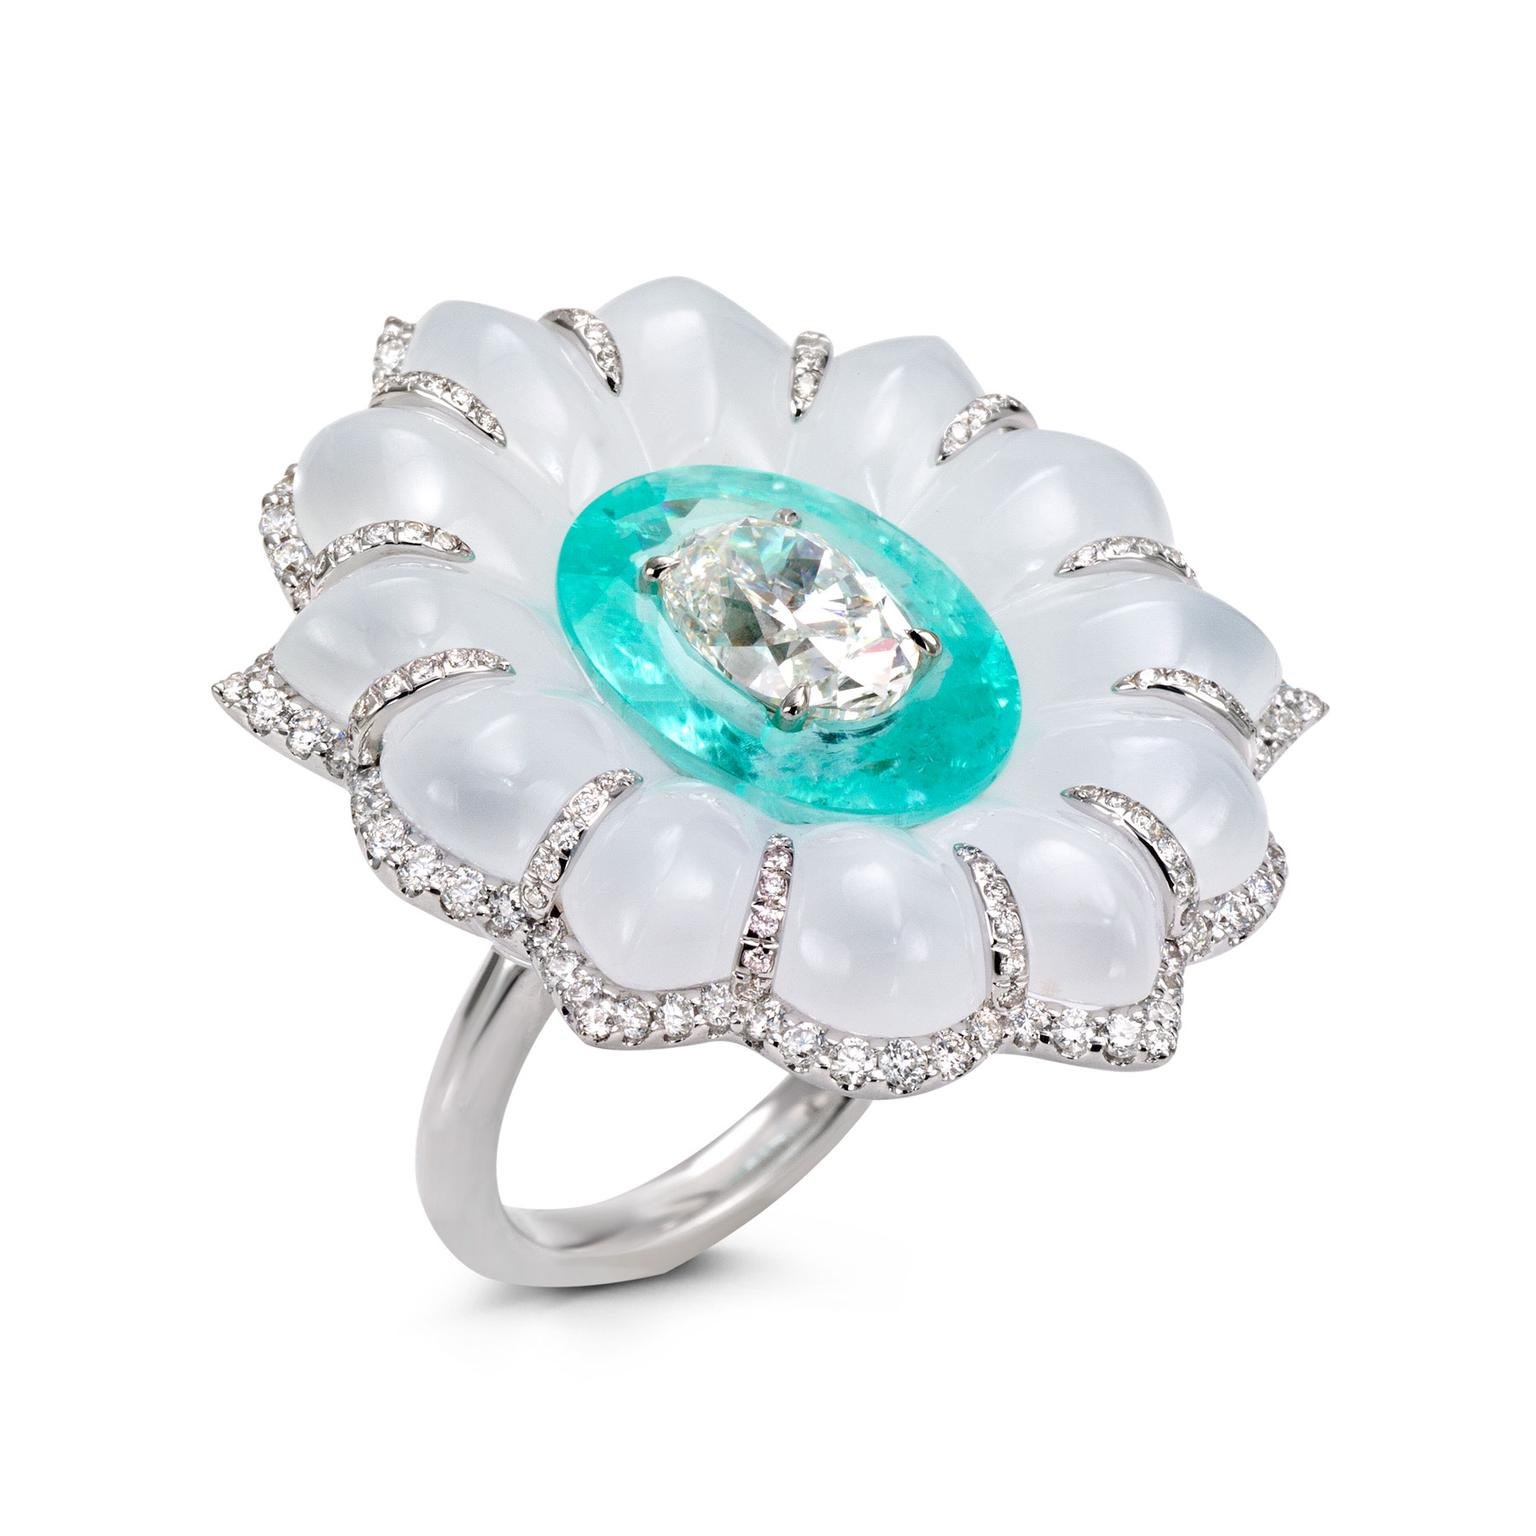 Boghossian Art of Inlay diamond, Paraiba tourmaline and chalcedony ring